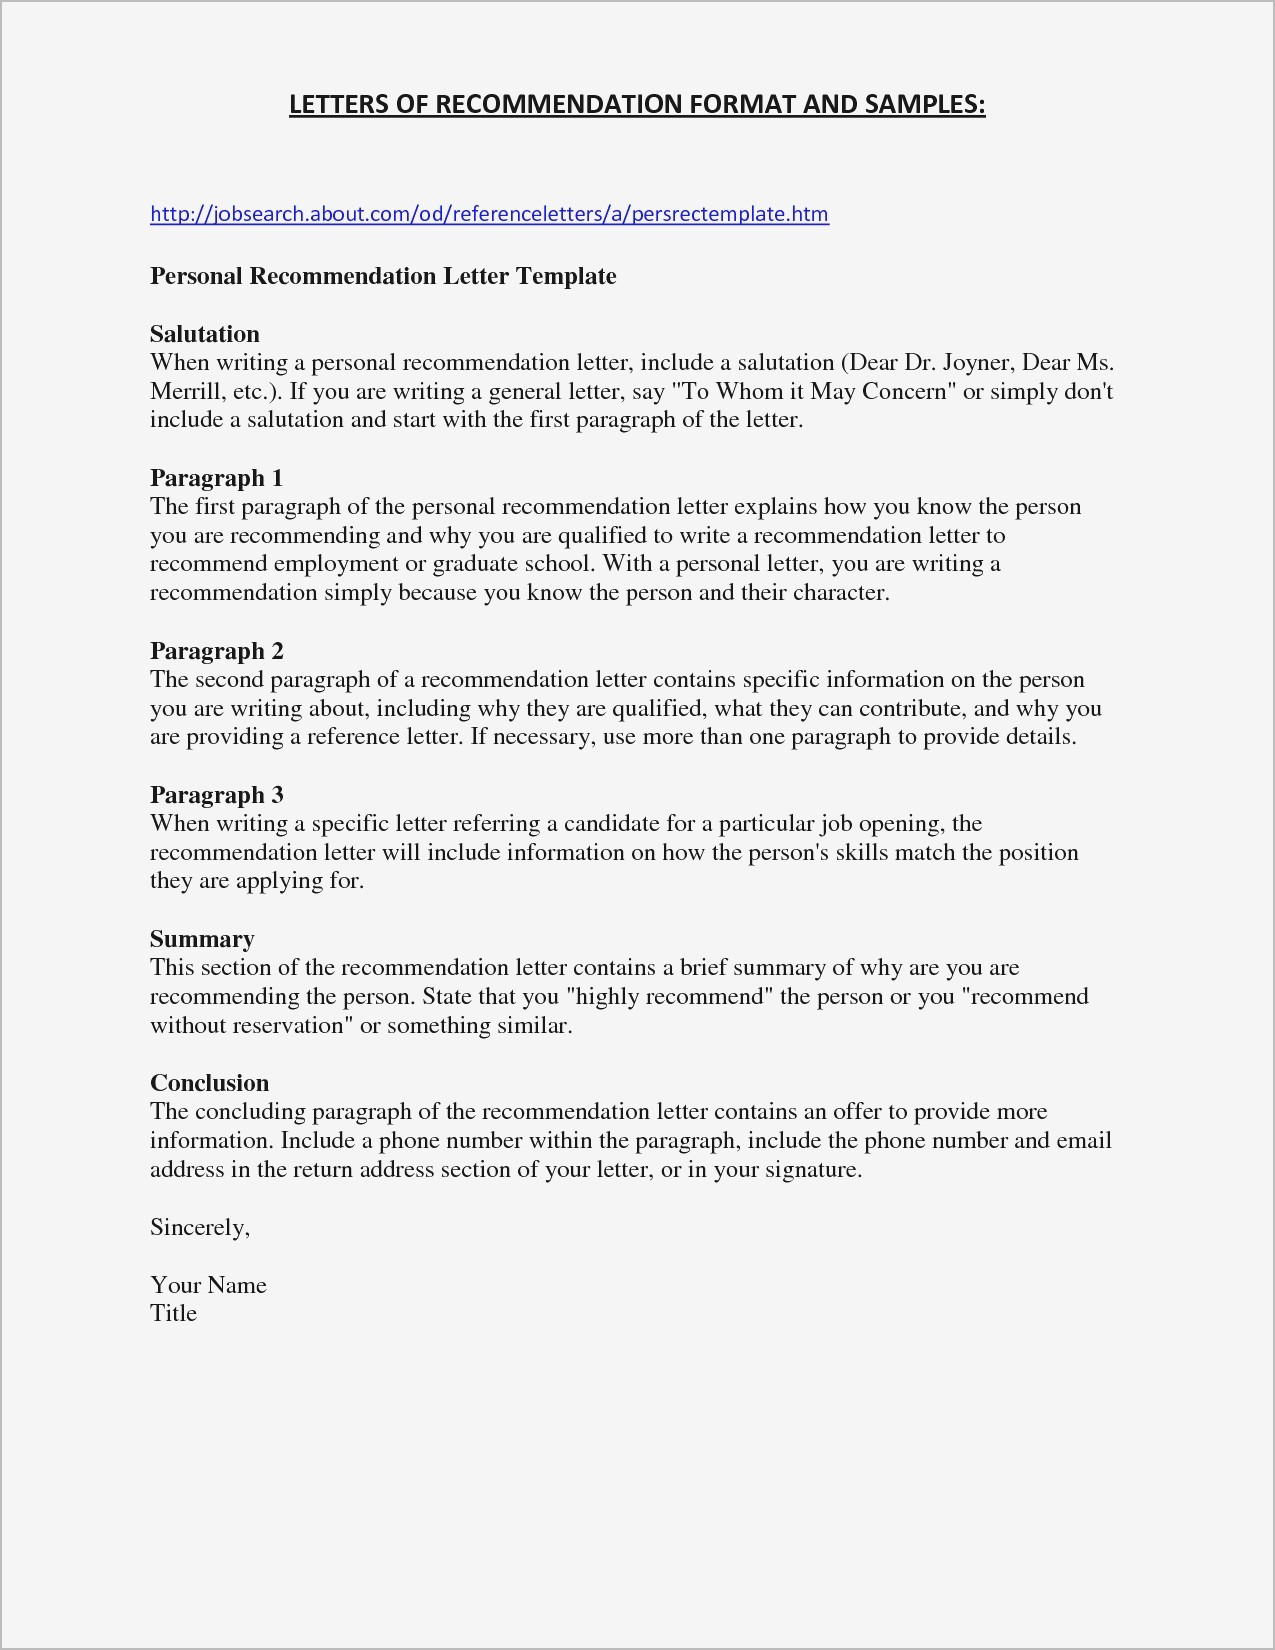 Personal Reference Letter Template - Personal Reference Letter for Job Valid Sample Personal Reference